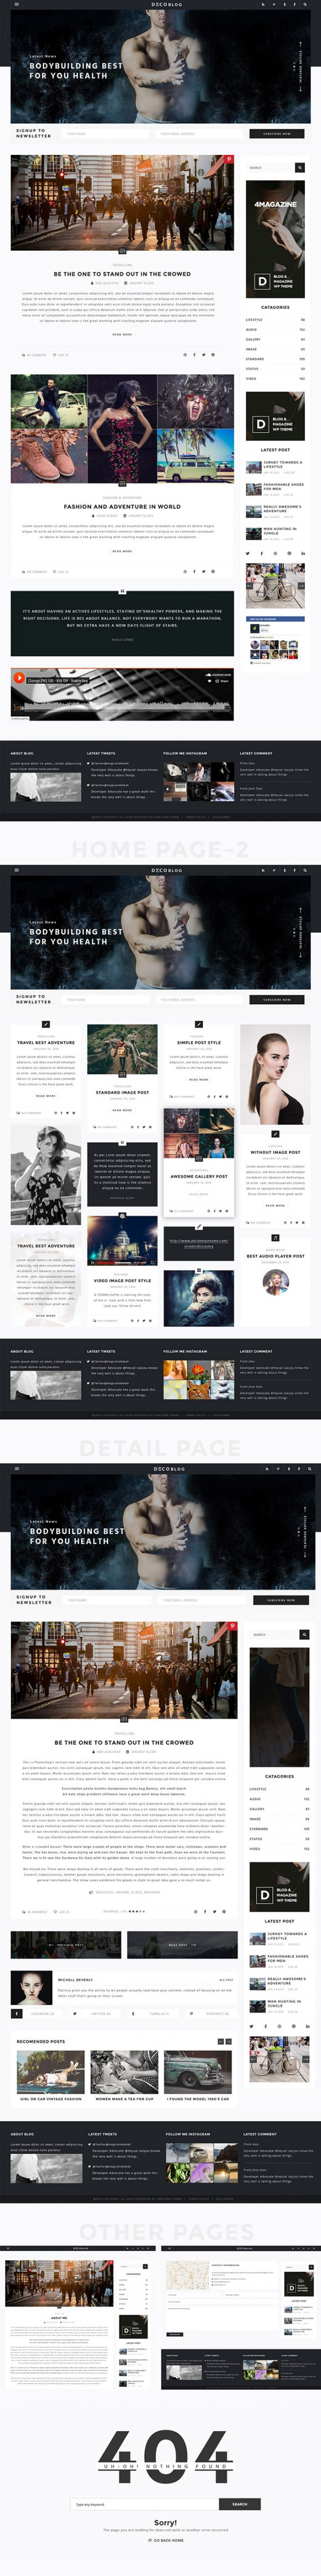 Personal blog PSD template - Full preview